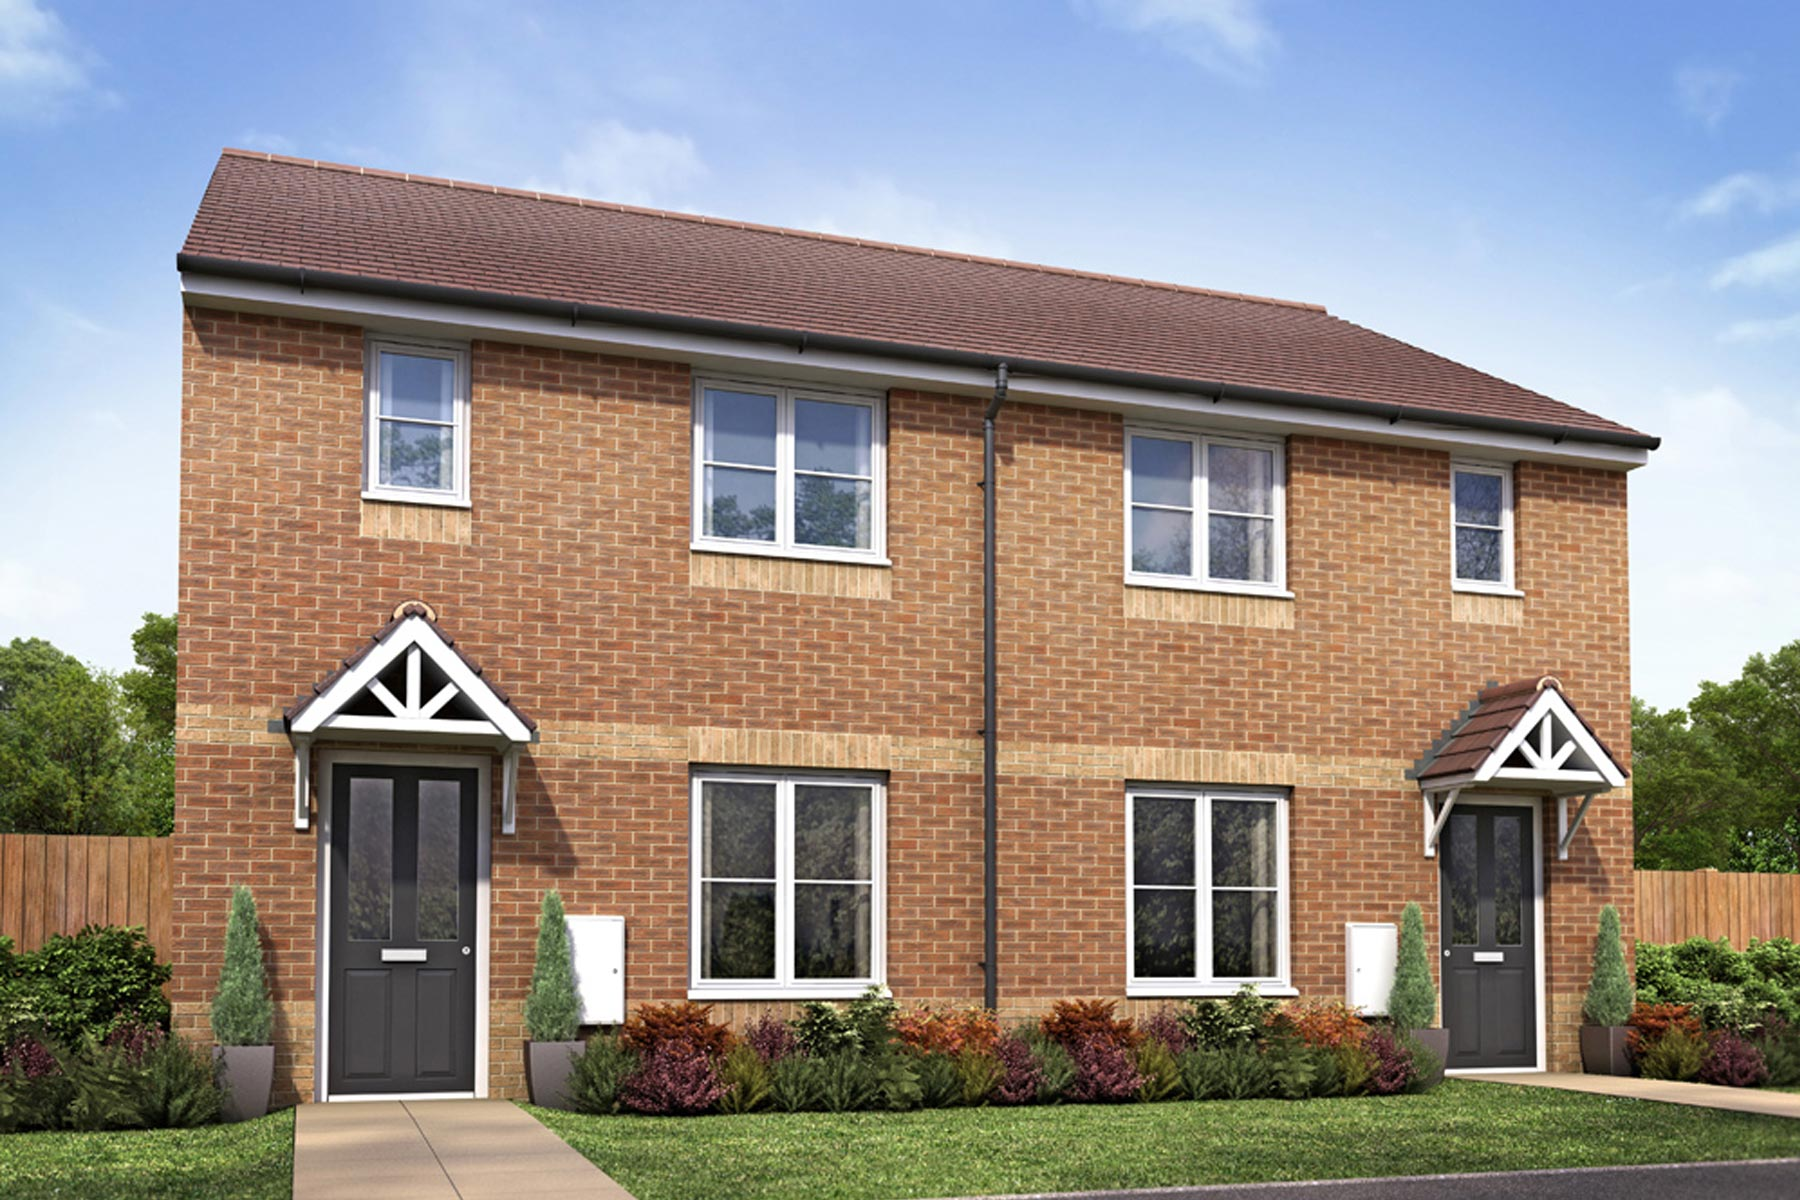 Taylor-WImpey-Exterior-Earlsford-PA32-3-bed